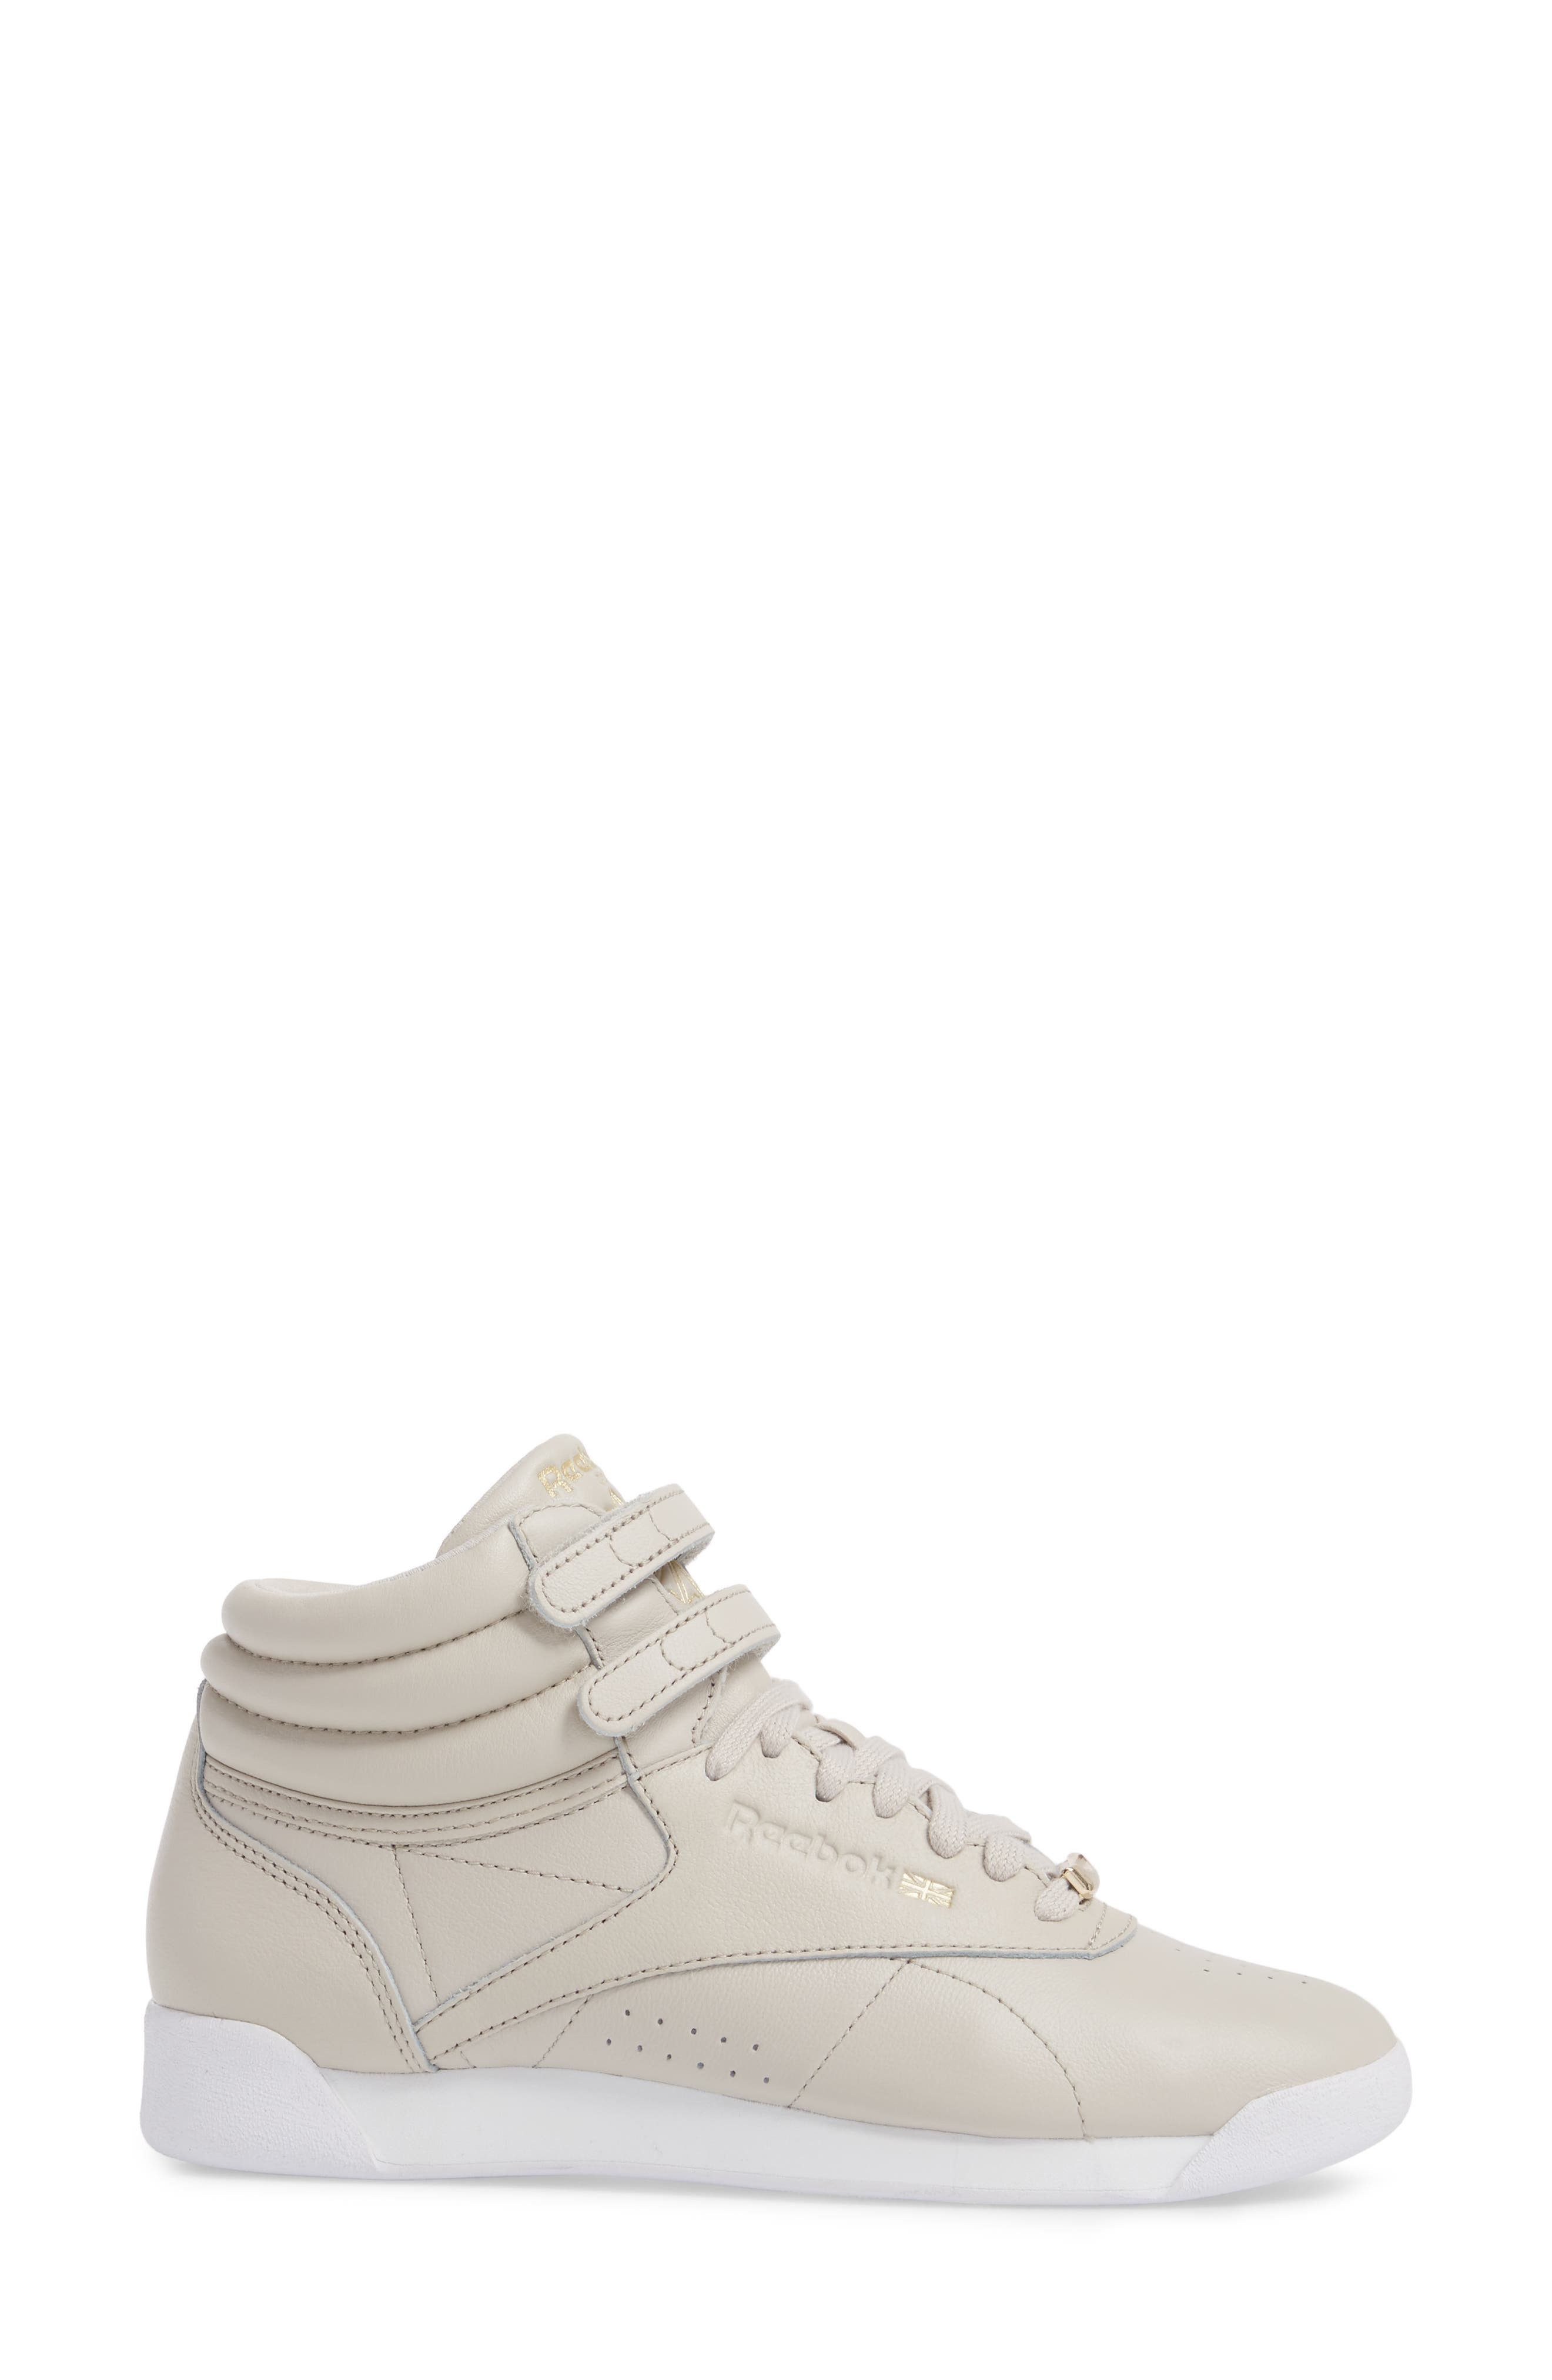 Freestyle Hi Muted Sneaker,                             Alternate thumbnail 3, color,                             SANDSTONE/ WHITE